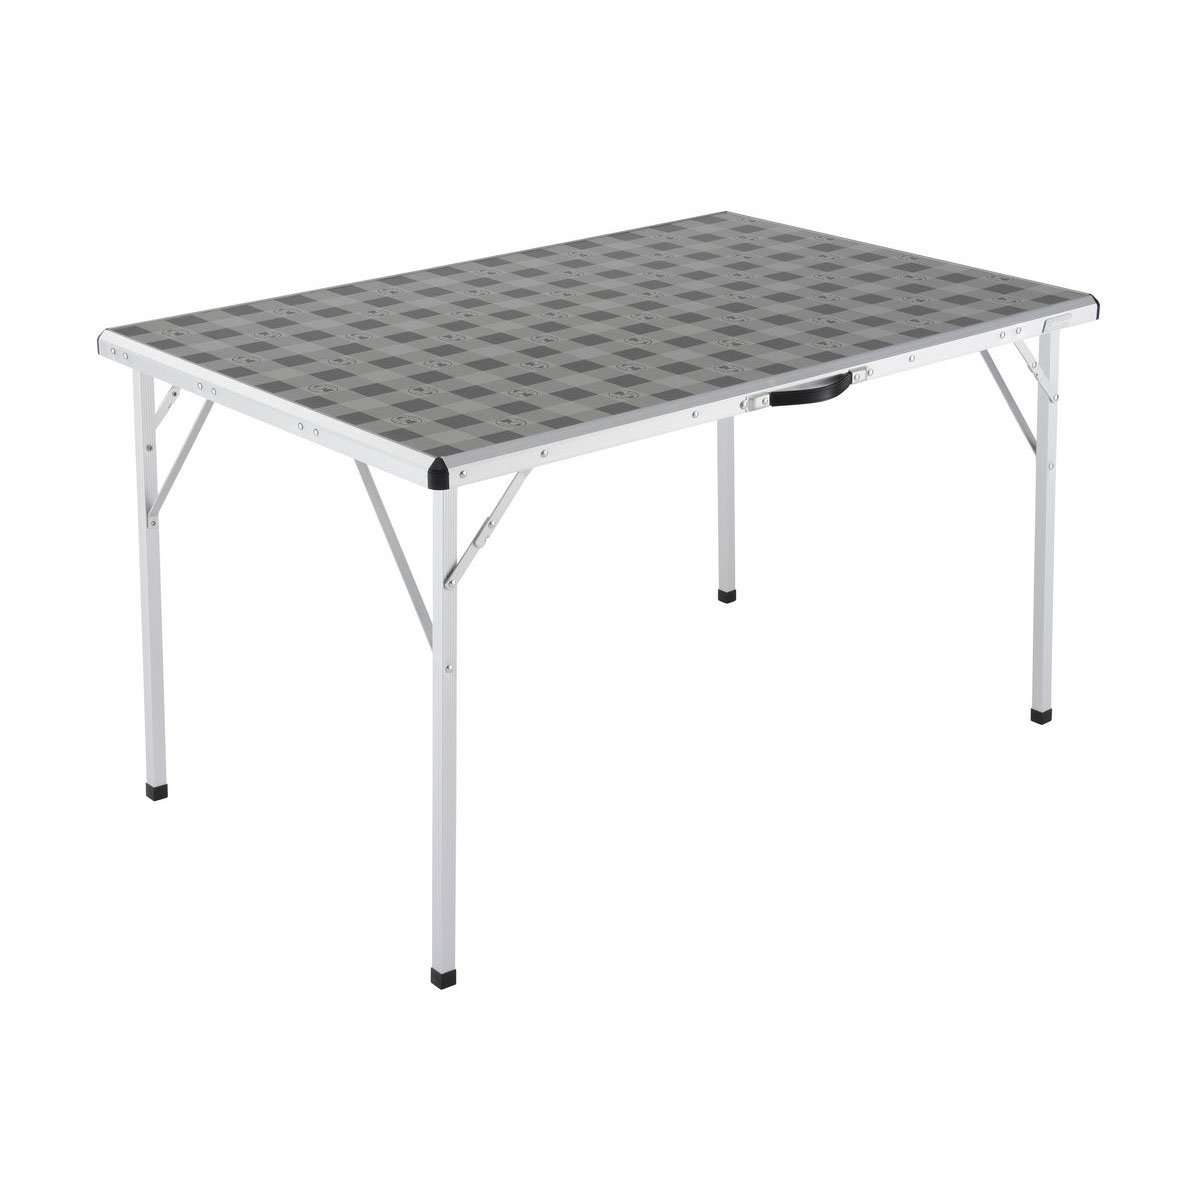 COLEMAN Camping Table - Large